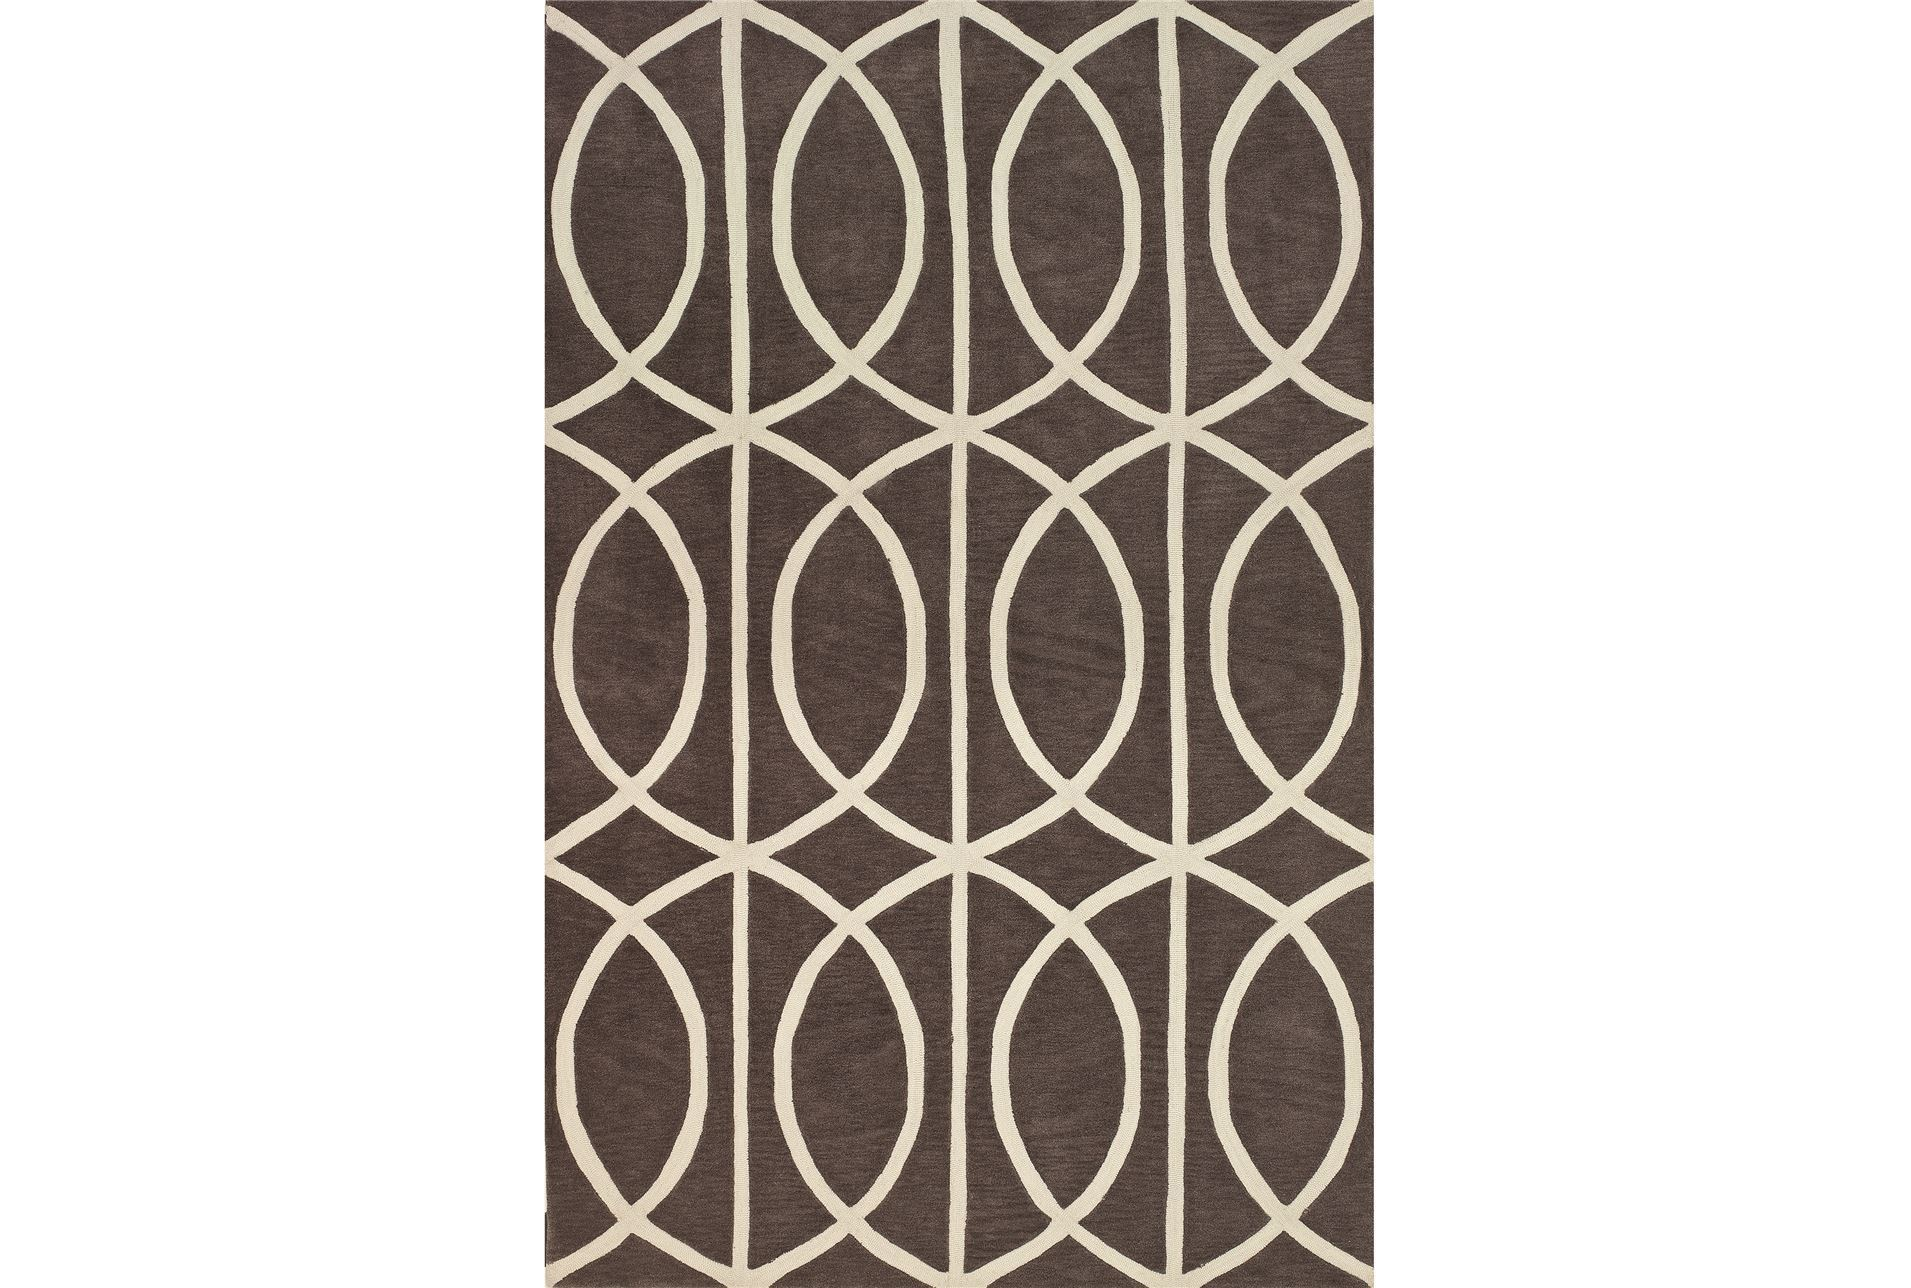 108x156 rug infinity grey living spaces for Living spaces rugs